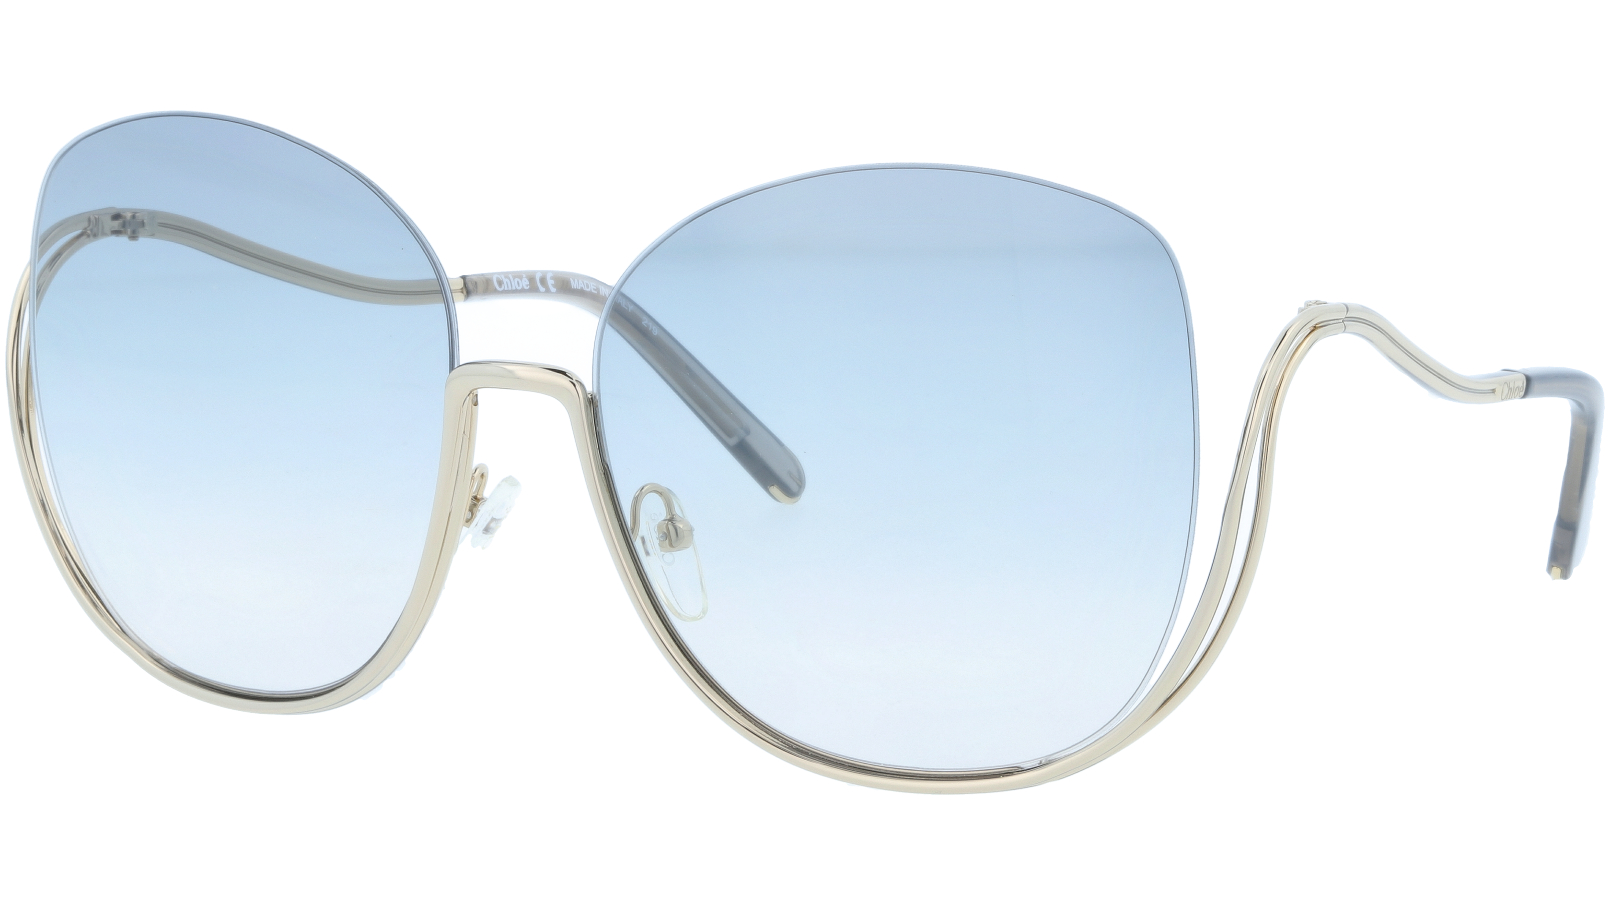 CHLOE CE125S 734 64 Gold Transparent Blue Butterfly Sunglasses